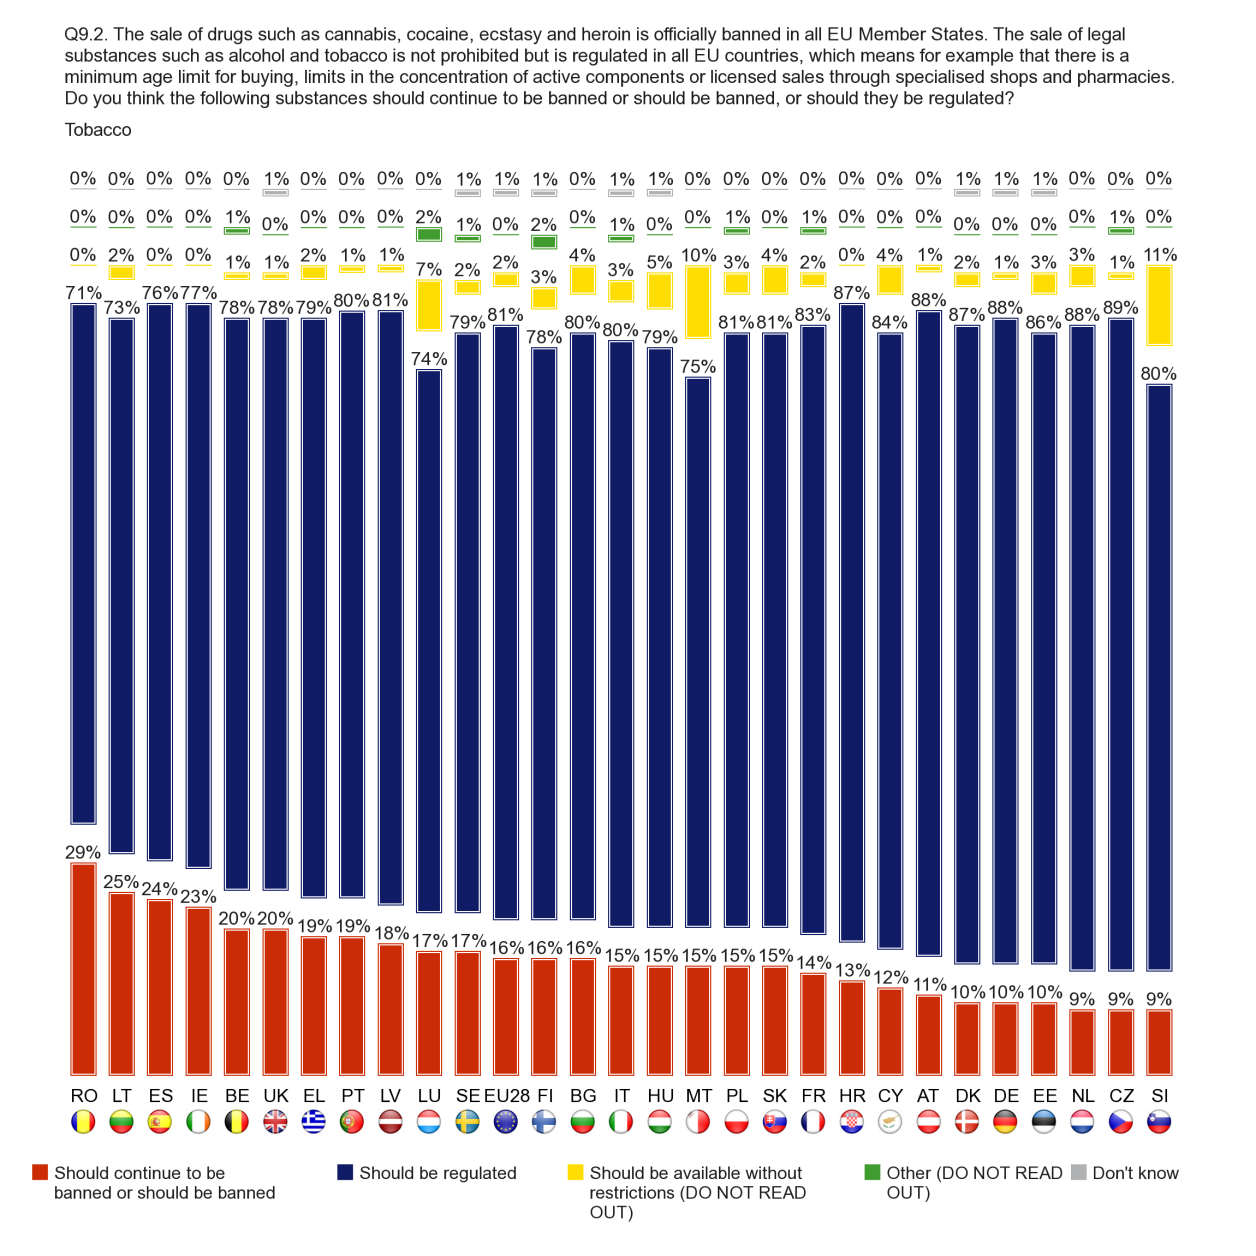 FLASH EUROBAROMETER At least one in five respondents in Romania (29%), Lithuania (25%), Spain (24%), Ireland (23%), Belgium and the UK (both 20%) think that tobacco should be banned, compared to just